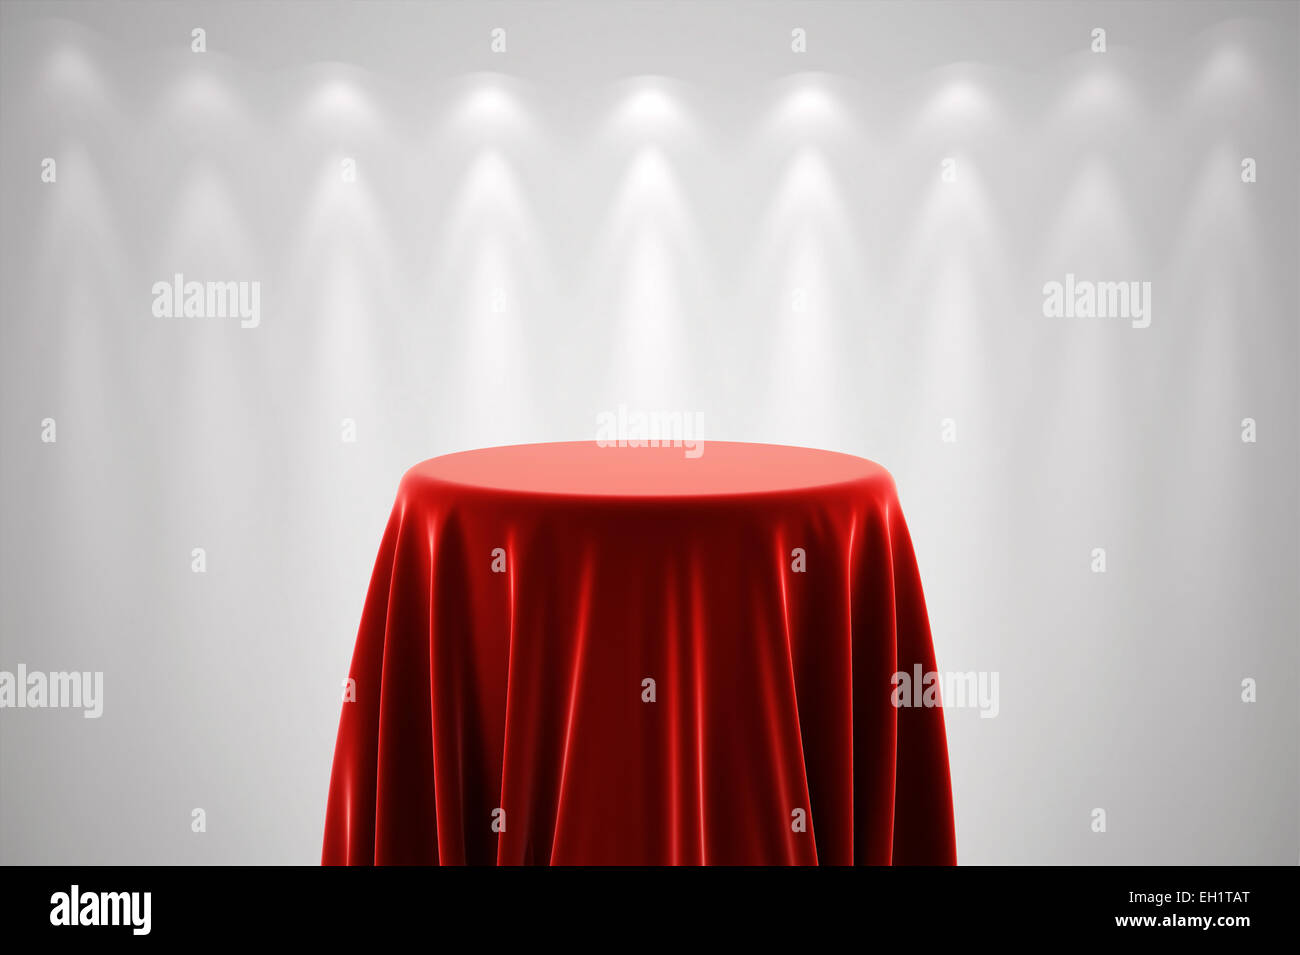 Round presentation pedestal covered with a red silk cloth in front of a white wall illuminated by spot lights - Stock Image